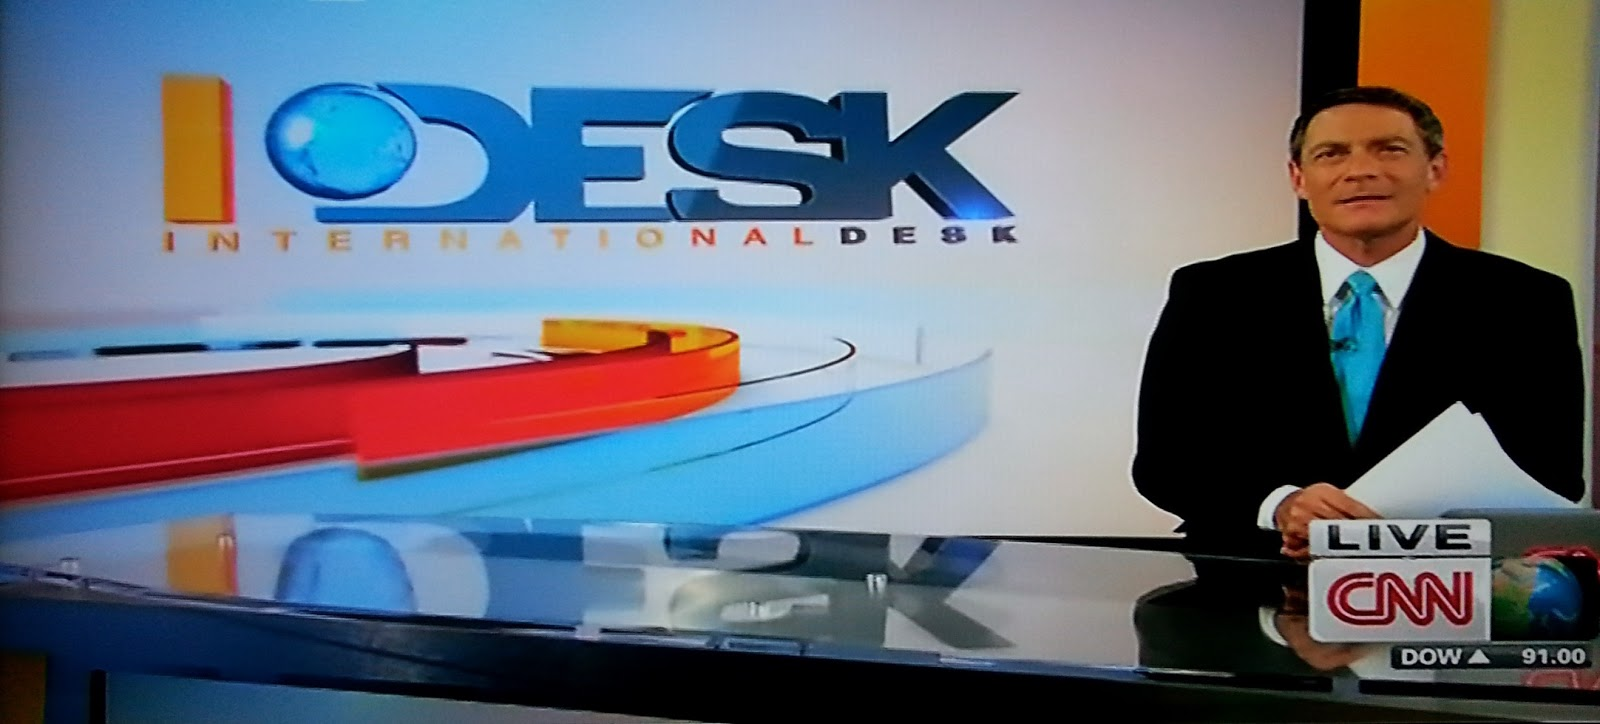 International Desk On Cnn Updates Its Air Look And Imaging With More Colour Spinning Gl Ribbons In The Logo